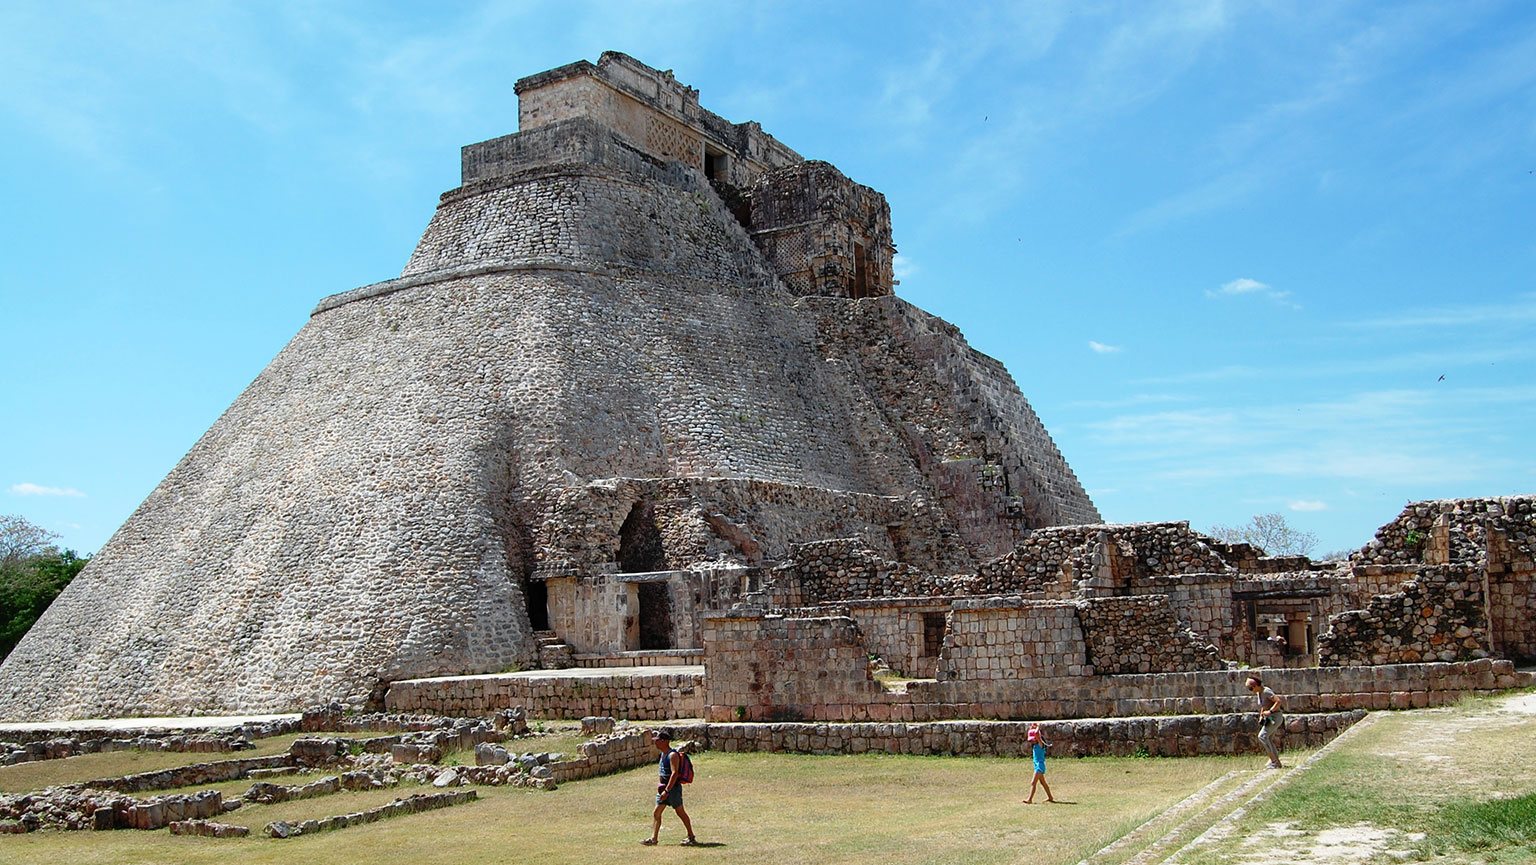 New Cities of the Terminal Classic—Uxmal